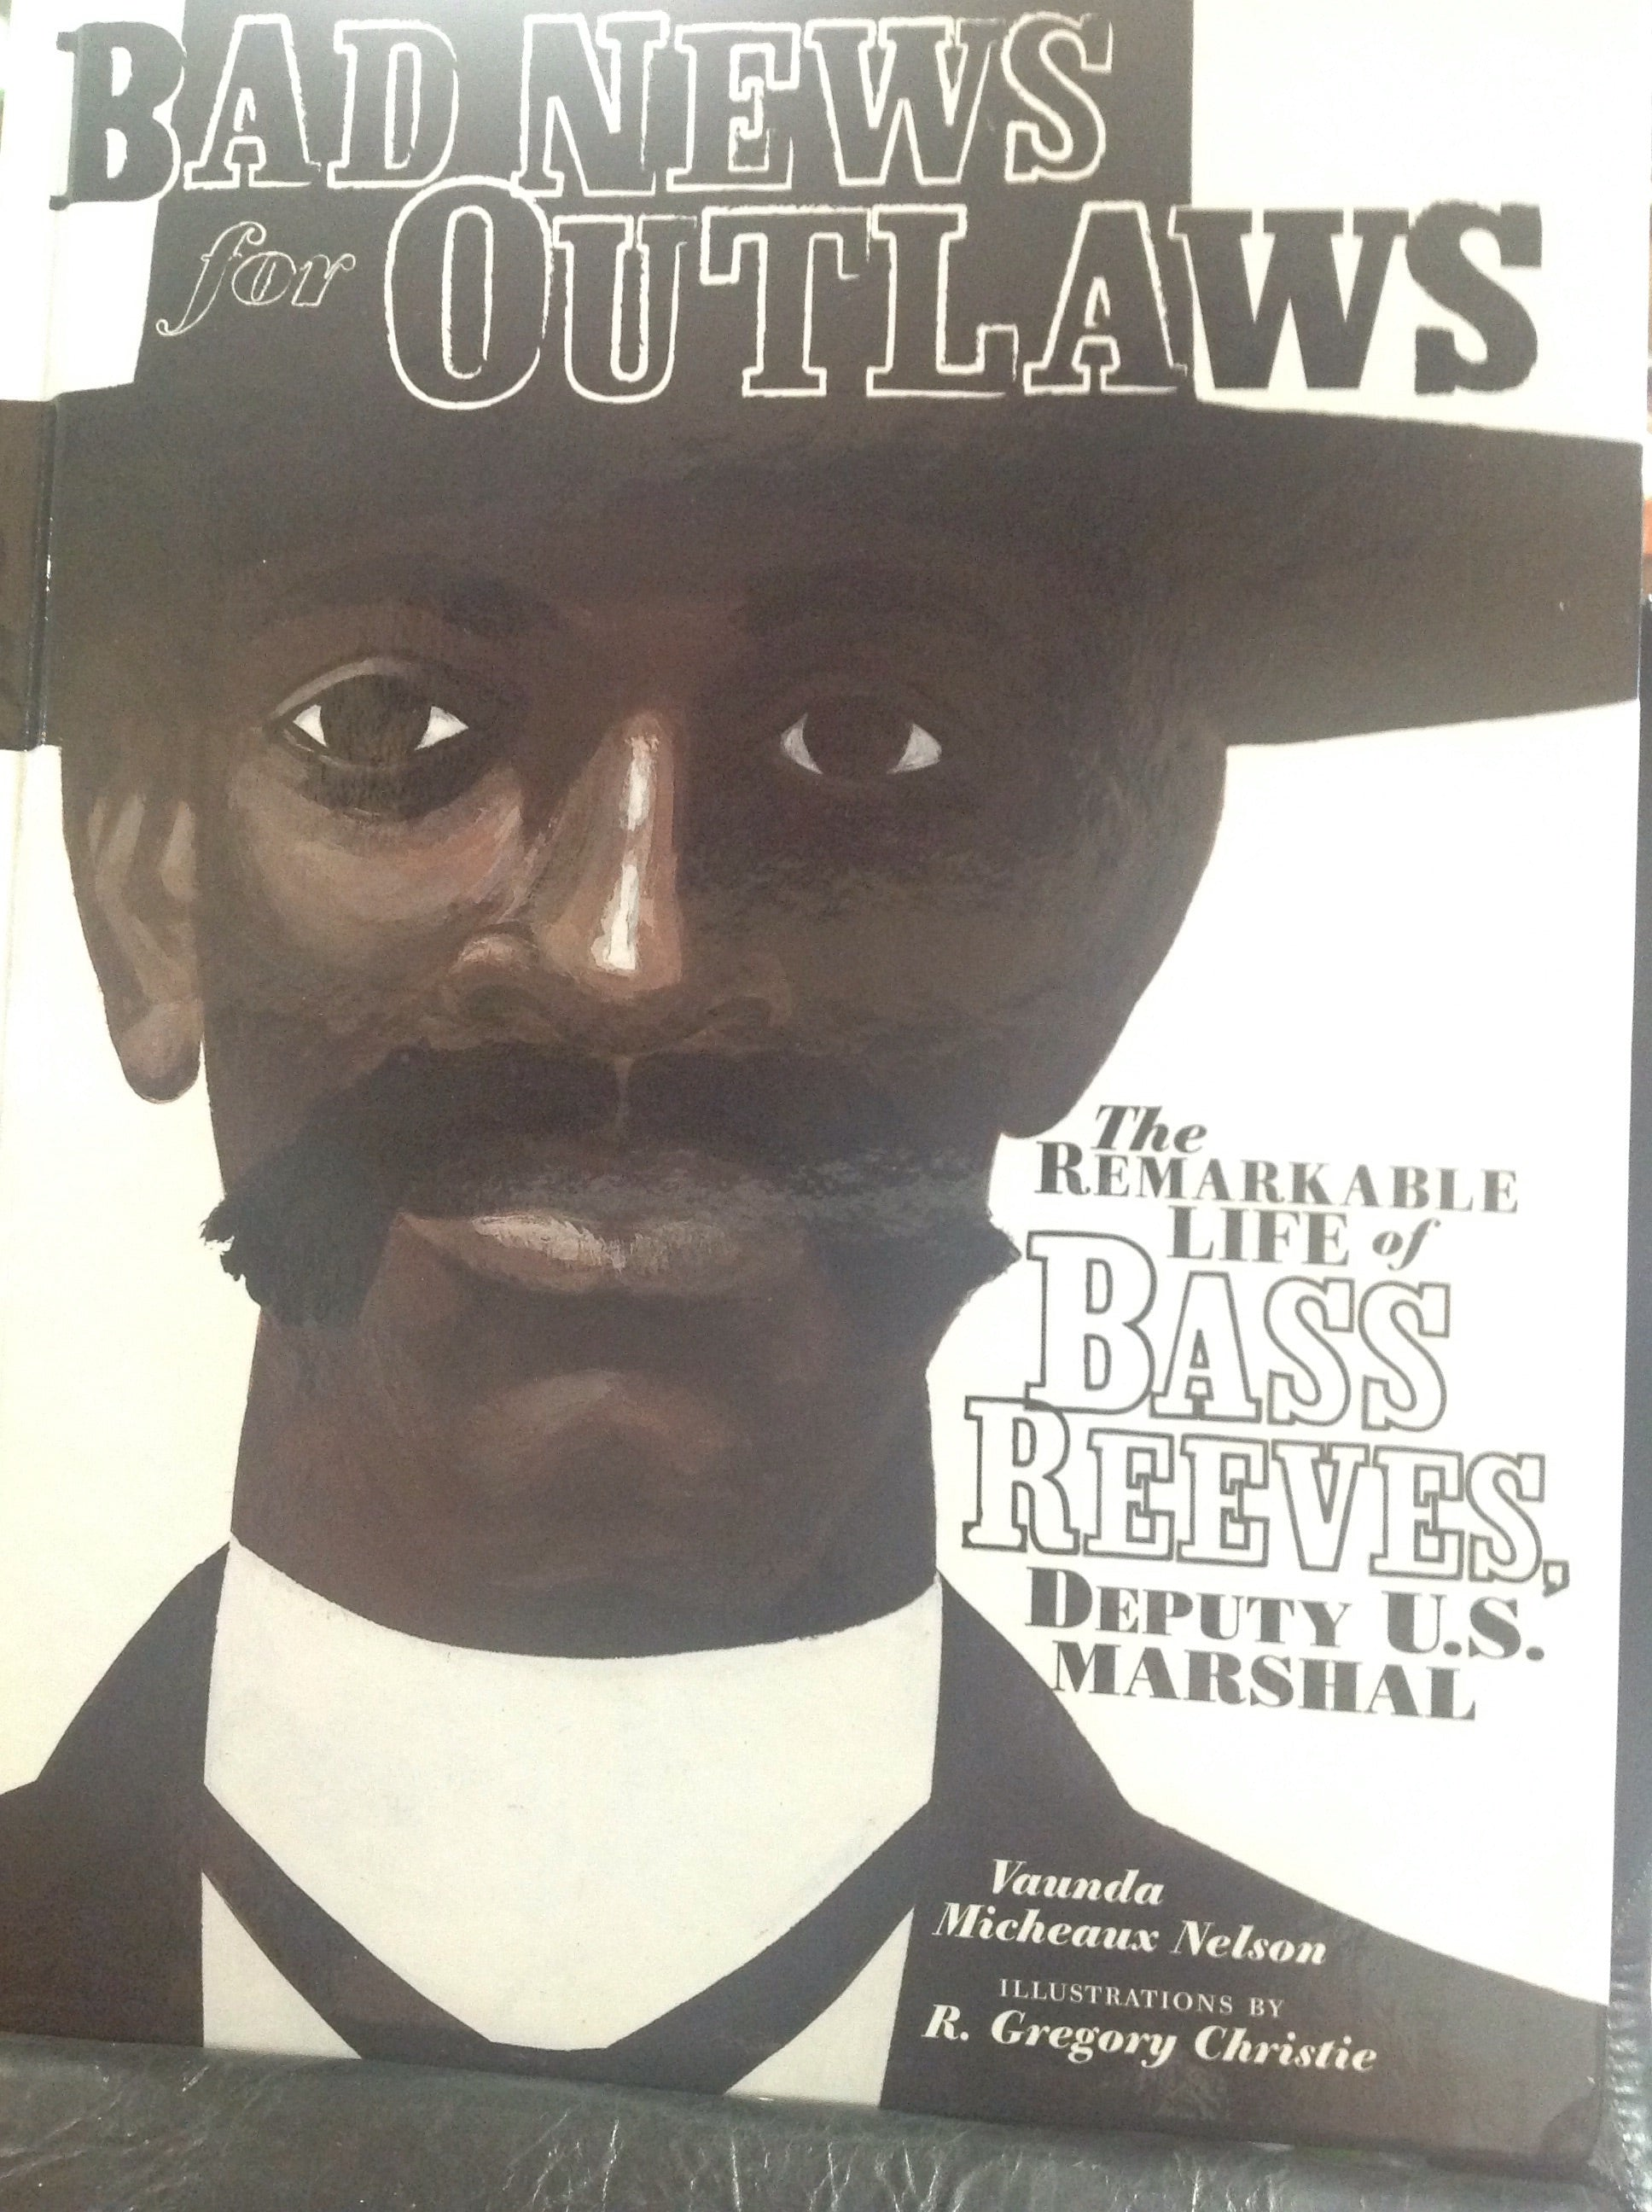 BOOKS - Bad News For Outlaws: The Remarkable Life of Bass Reeves, Deputy U.S. Marshall